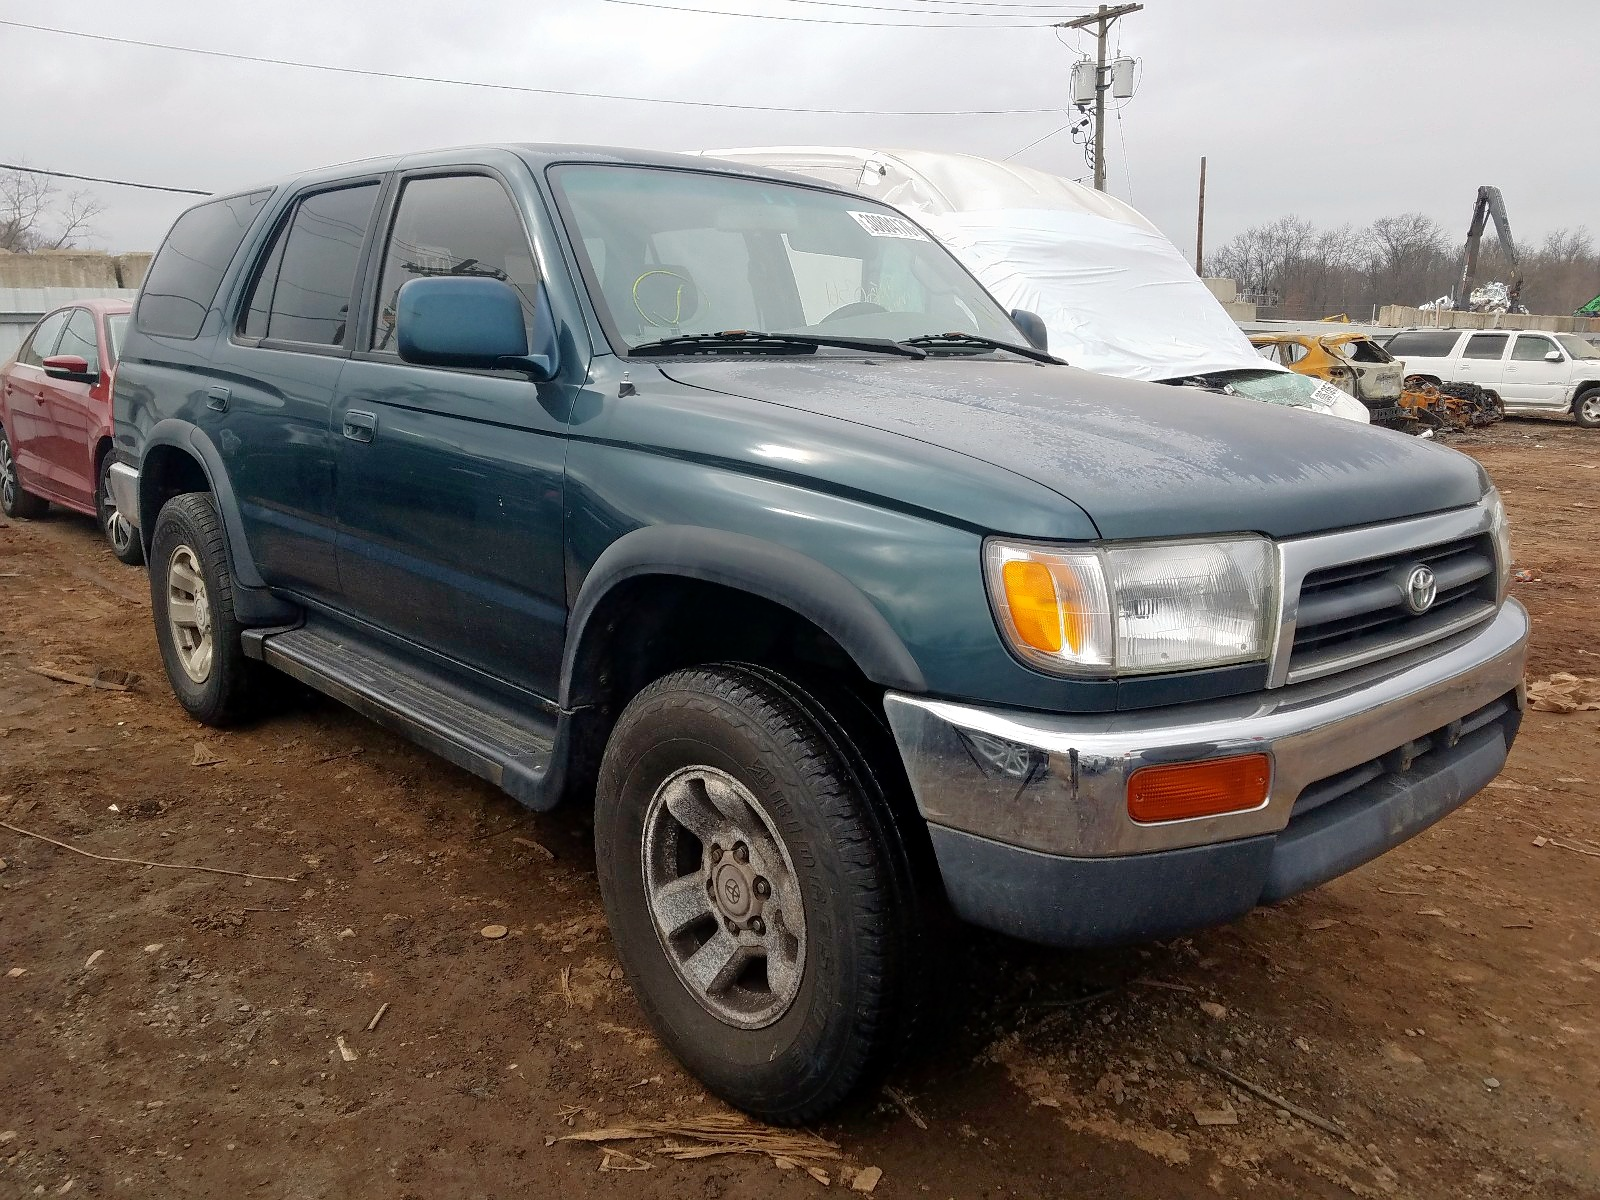 1997 toyota 4runner sr for sale at copart marlboro ny lot 30804170 salvagereseller com salvagereseller com